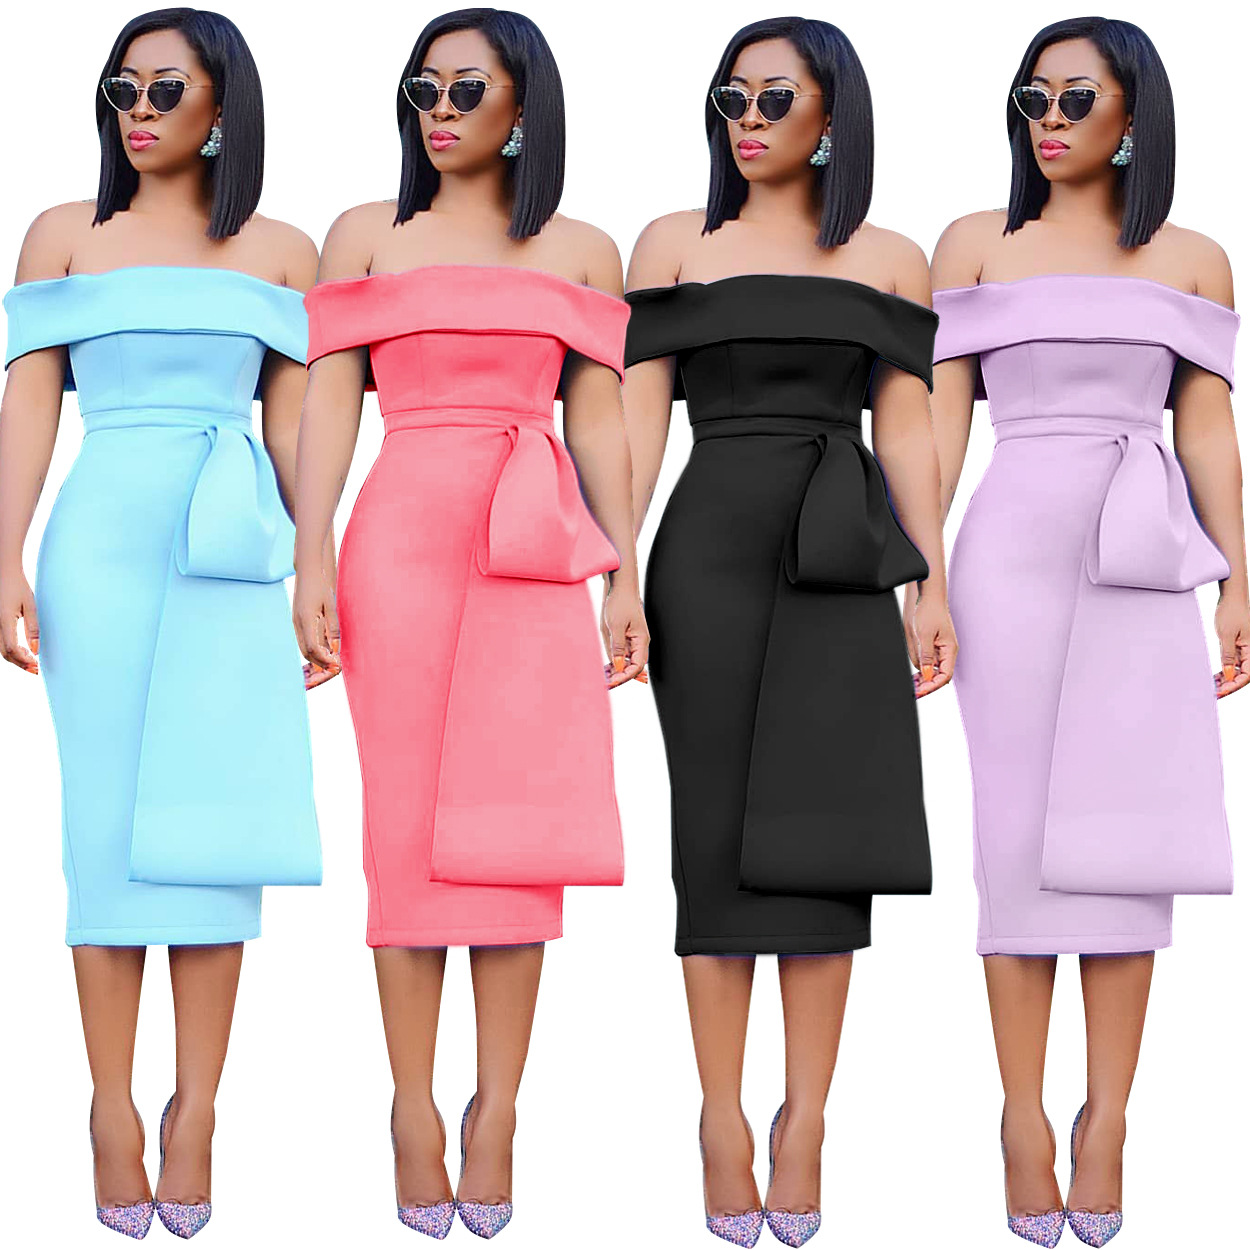 2019 New Arrival Elegent Fashion Style African Women Polyester Plus Size Sleeveless Dress S-XL